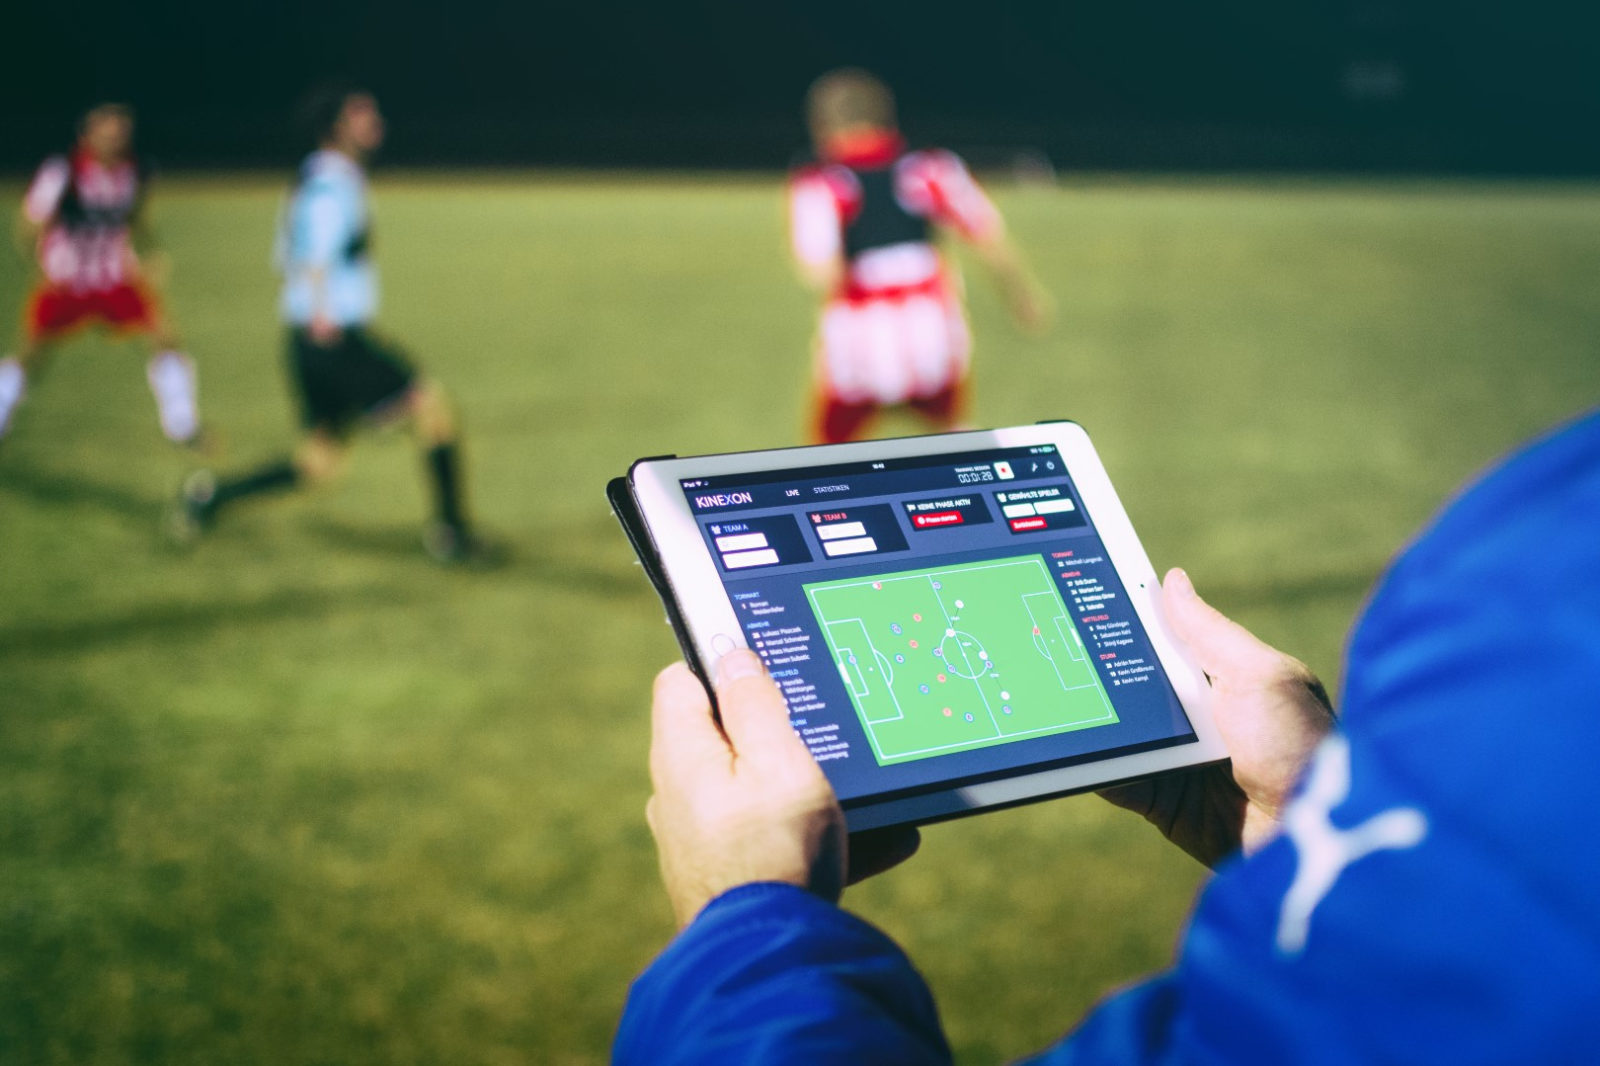 Sport analysis software from KINEXON in use on the soccer field.